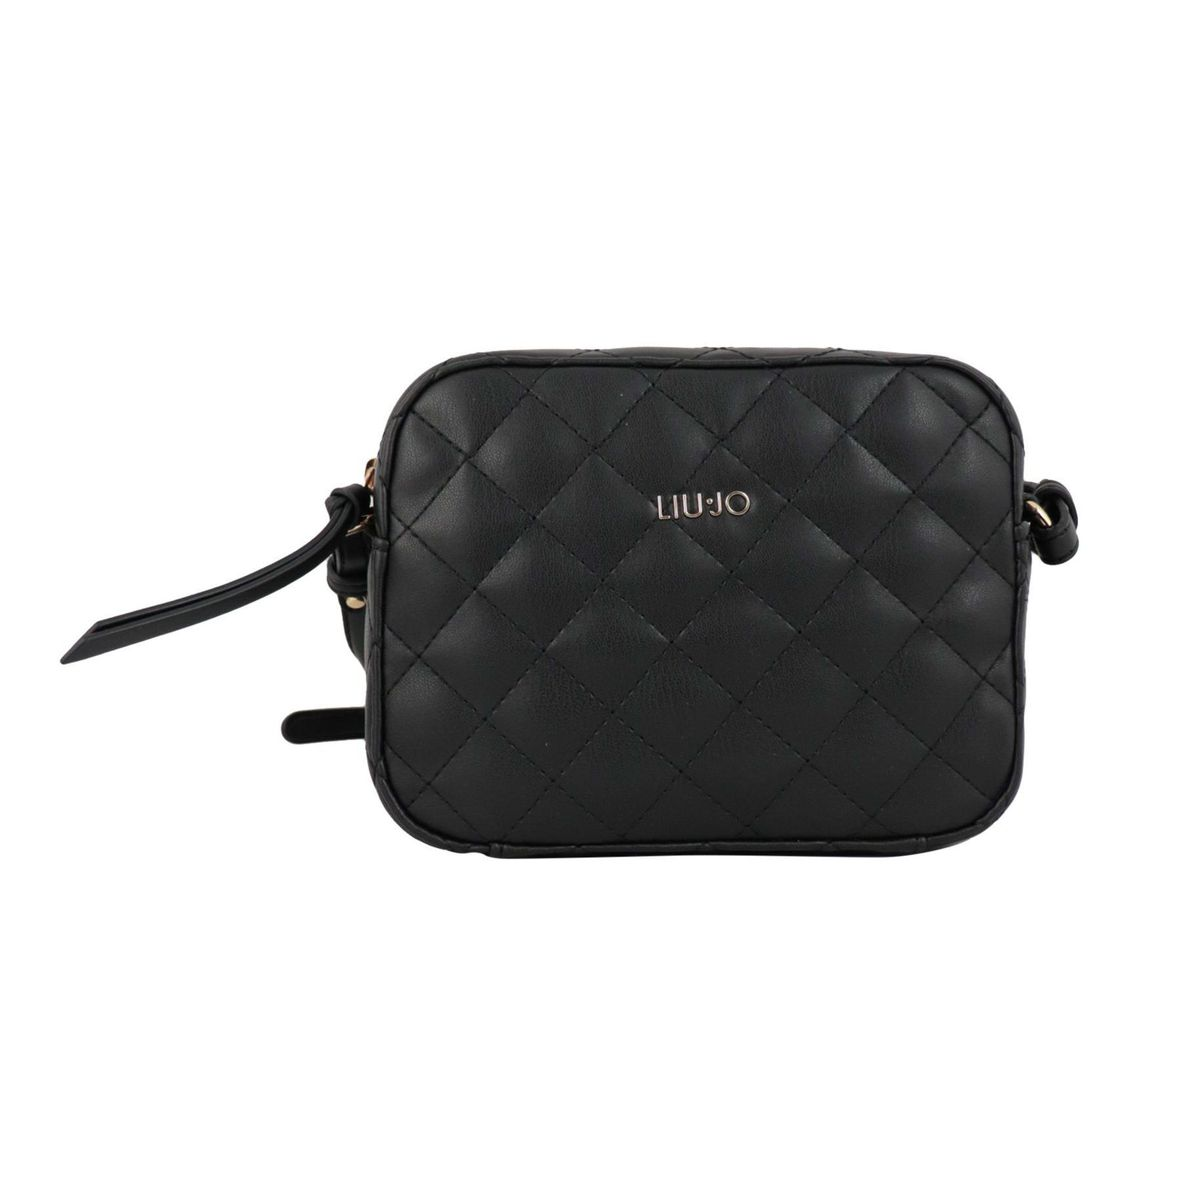 Shoulder bag in matelassé effect imitation leather Black Liu Jo